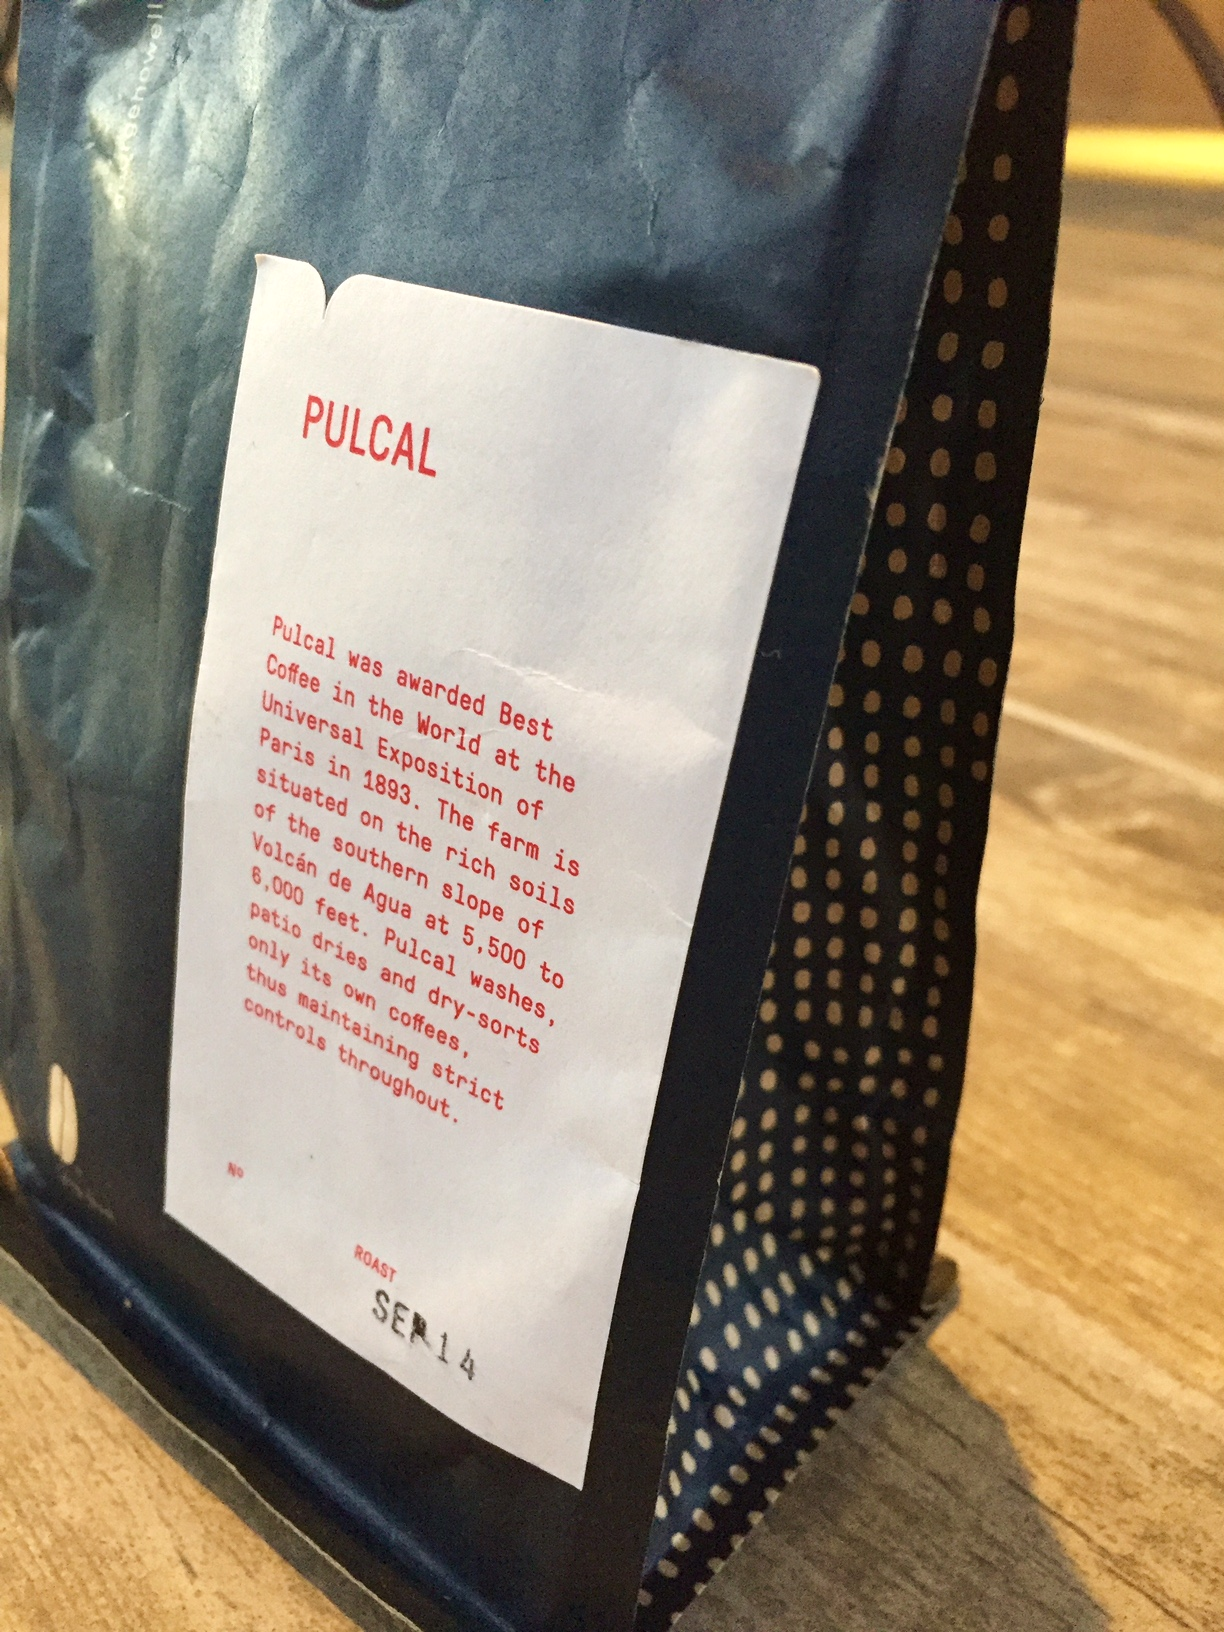 A great coffee with rich history from a great roaster with rich history.